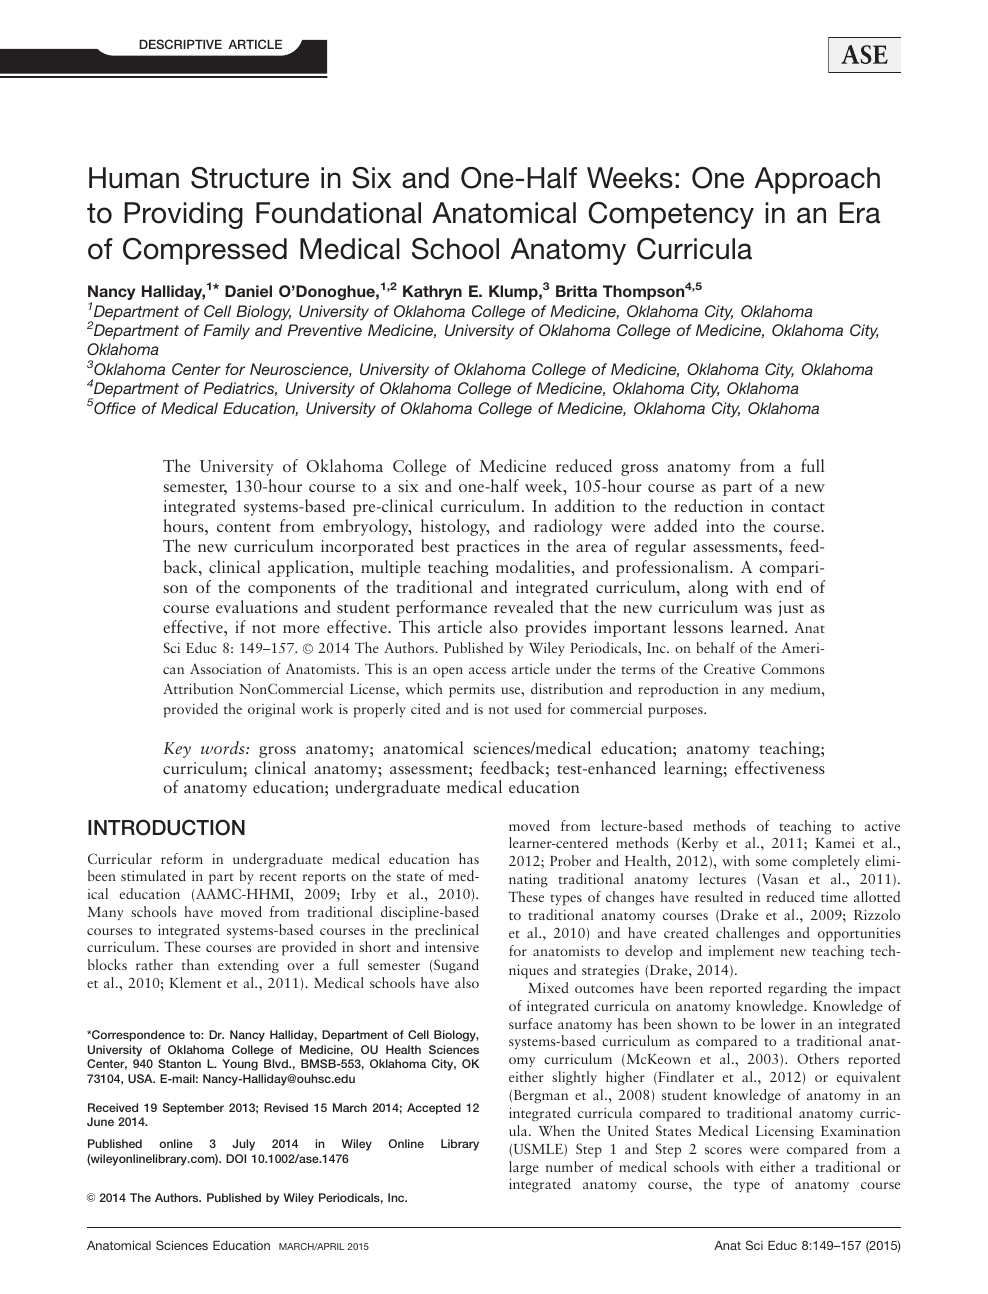 Human structure in six and one-half weeks: One approach to providing